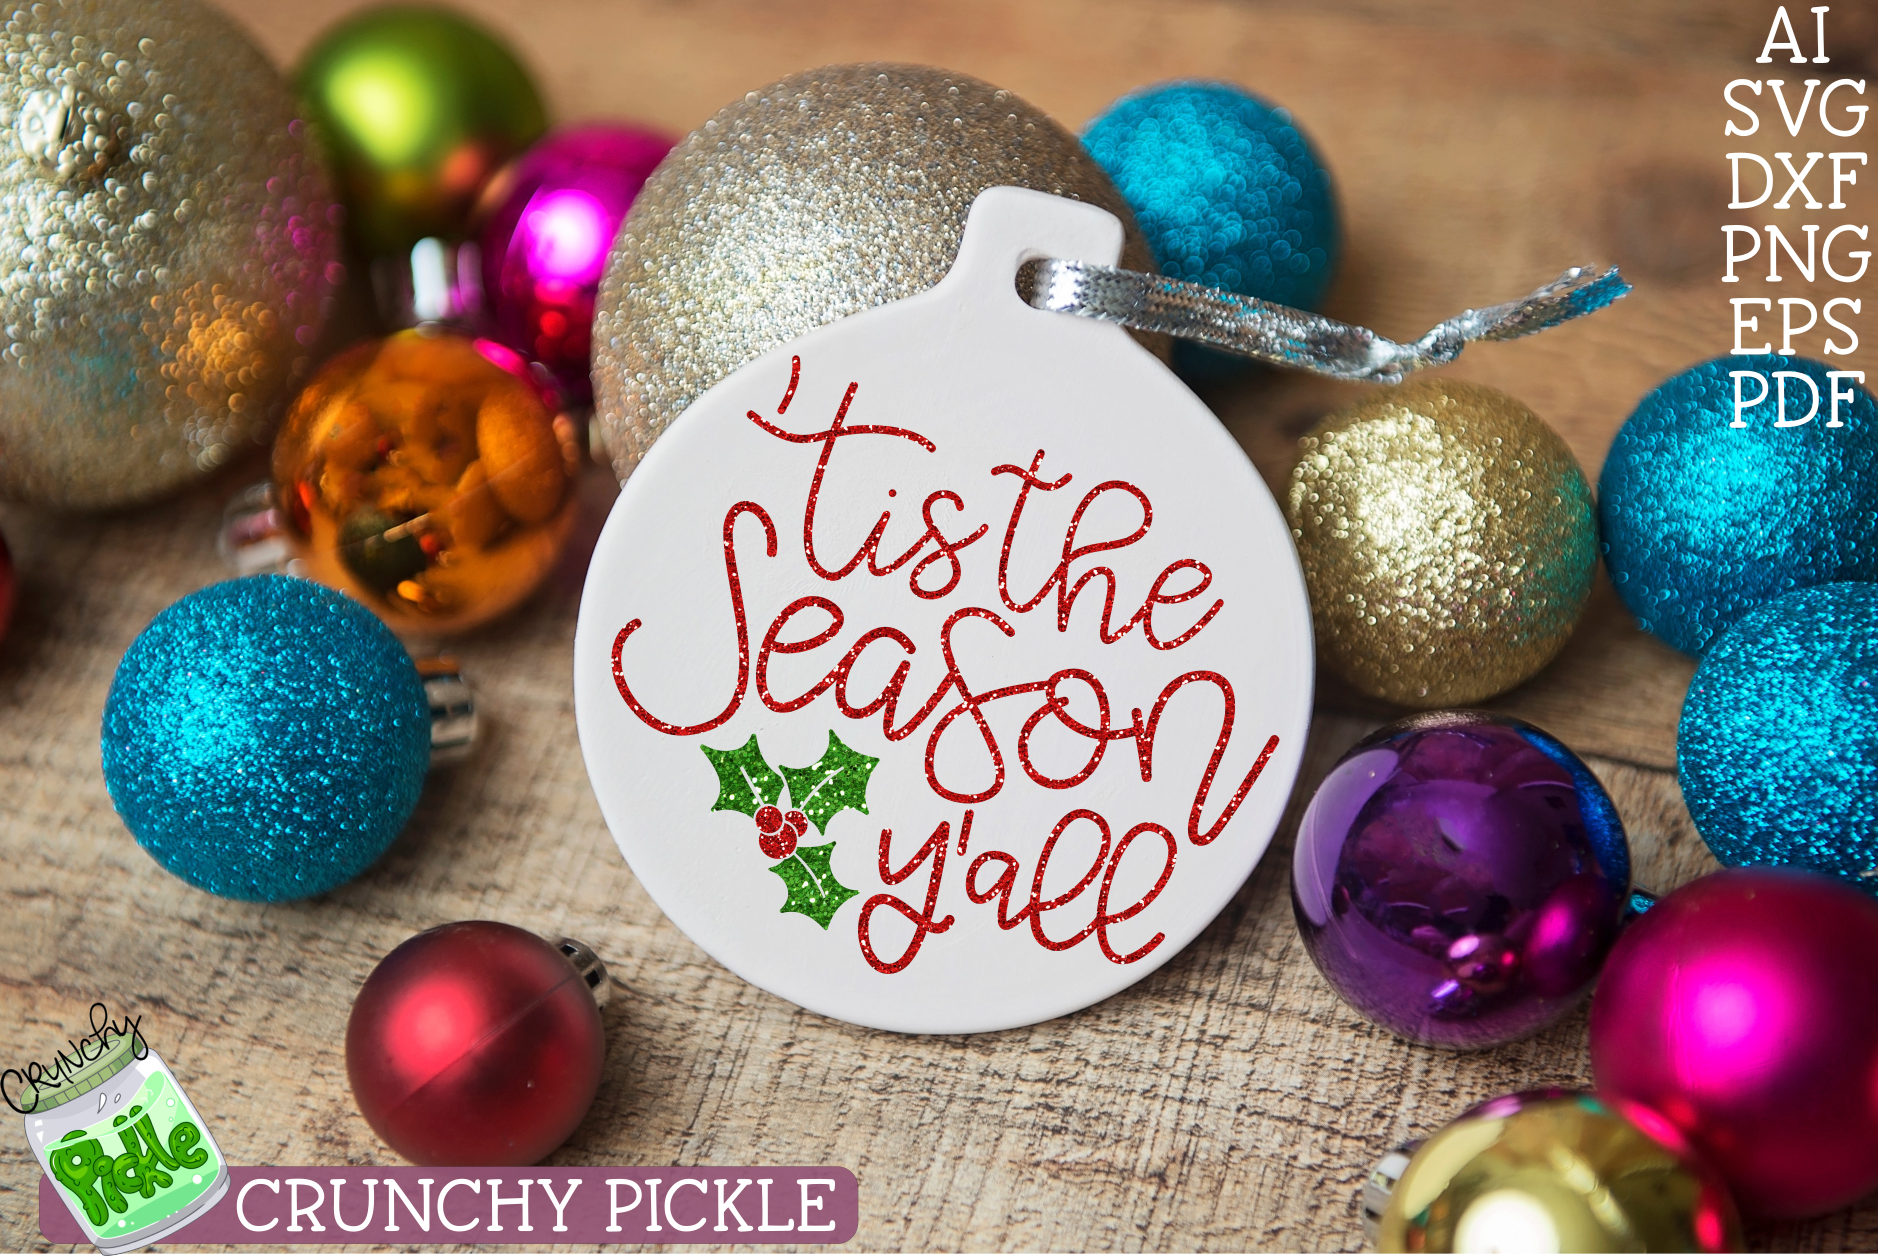 Tis the Season Y'all Christmas SVG example image 1